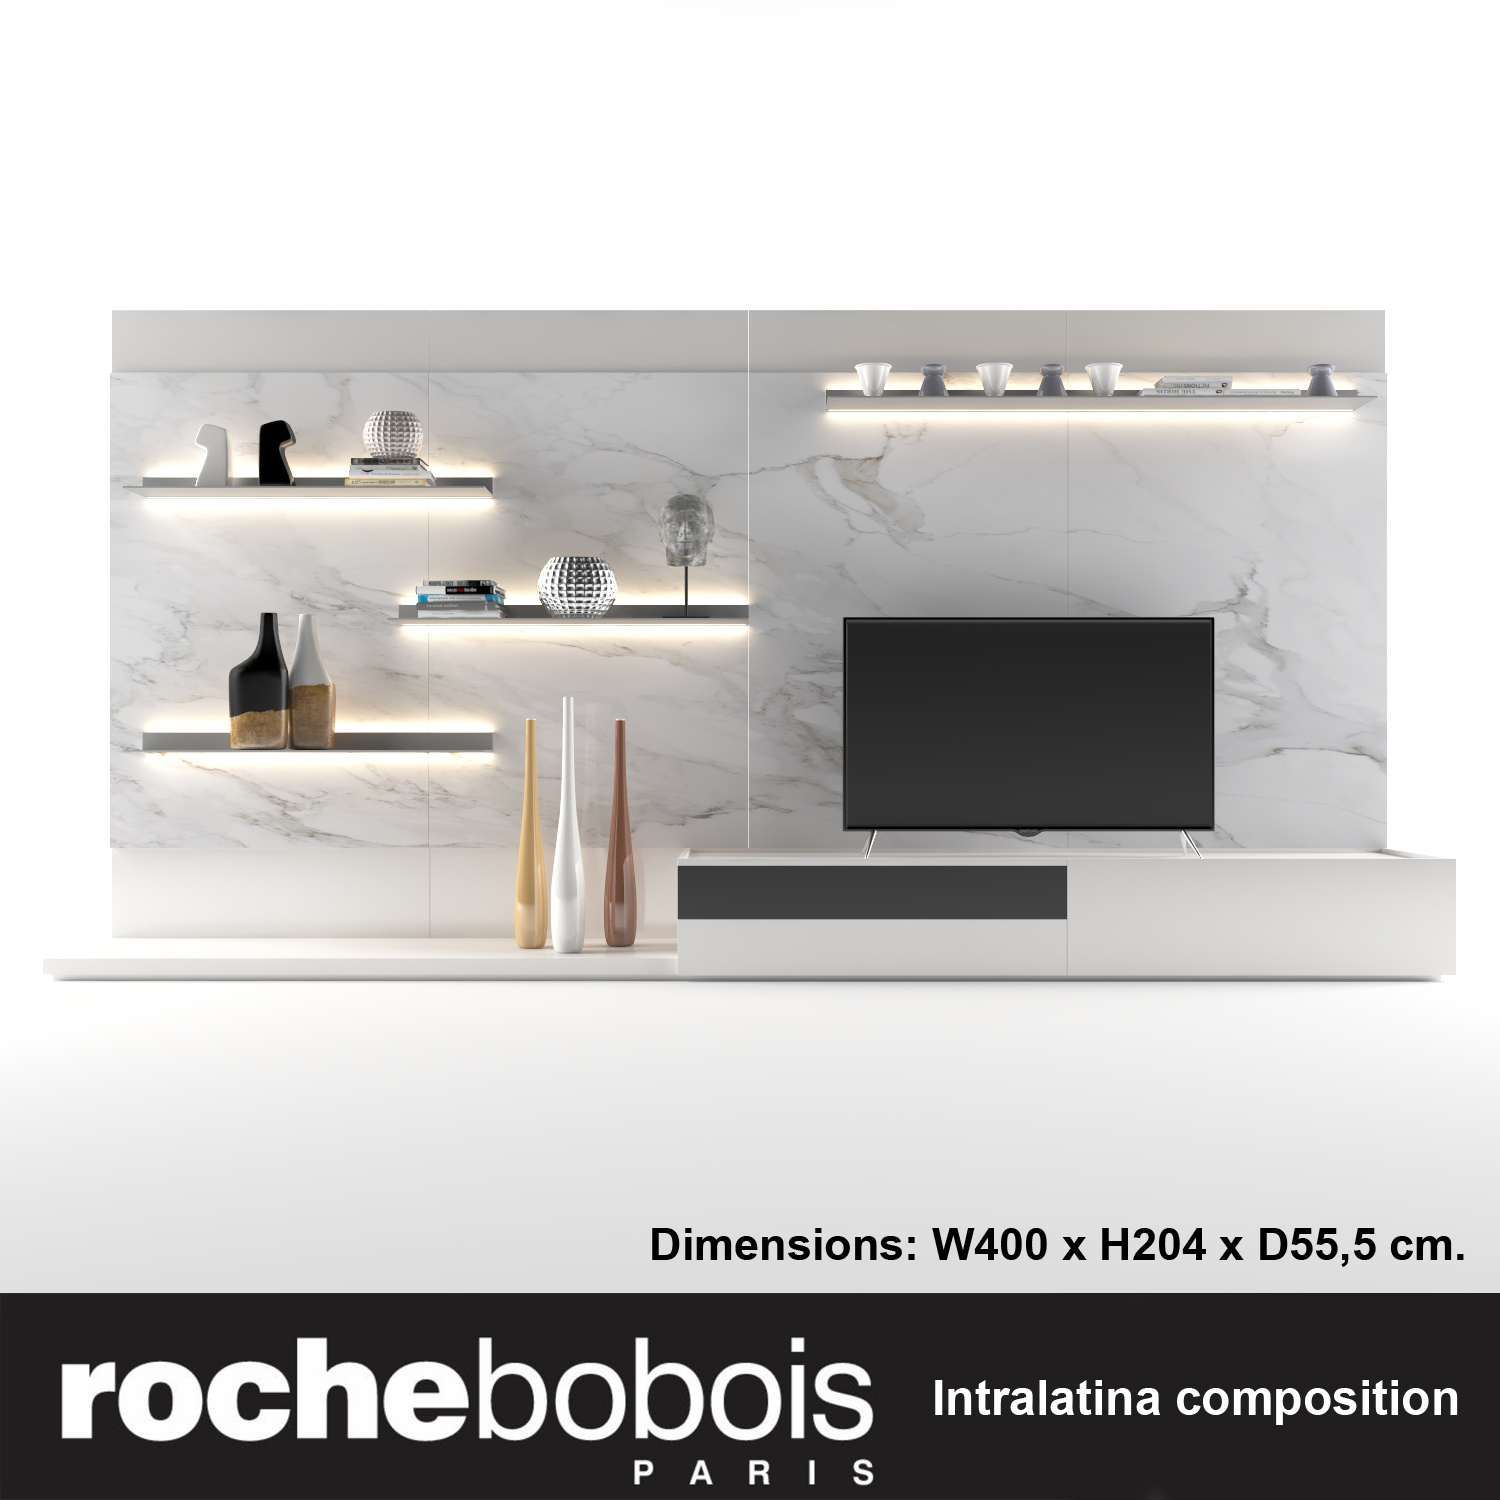 Roche Bobois Paris 7 roche bobois intralatina composition